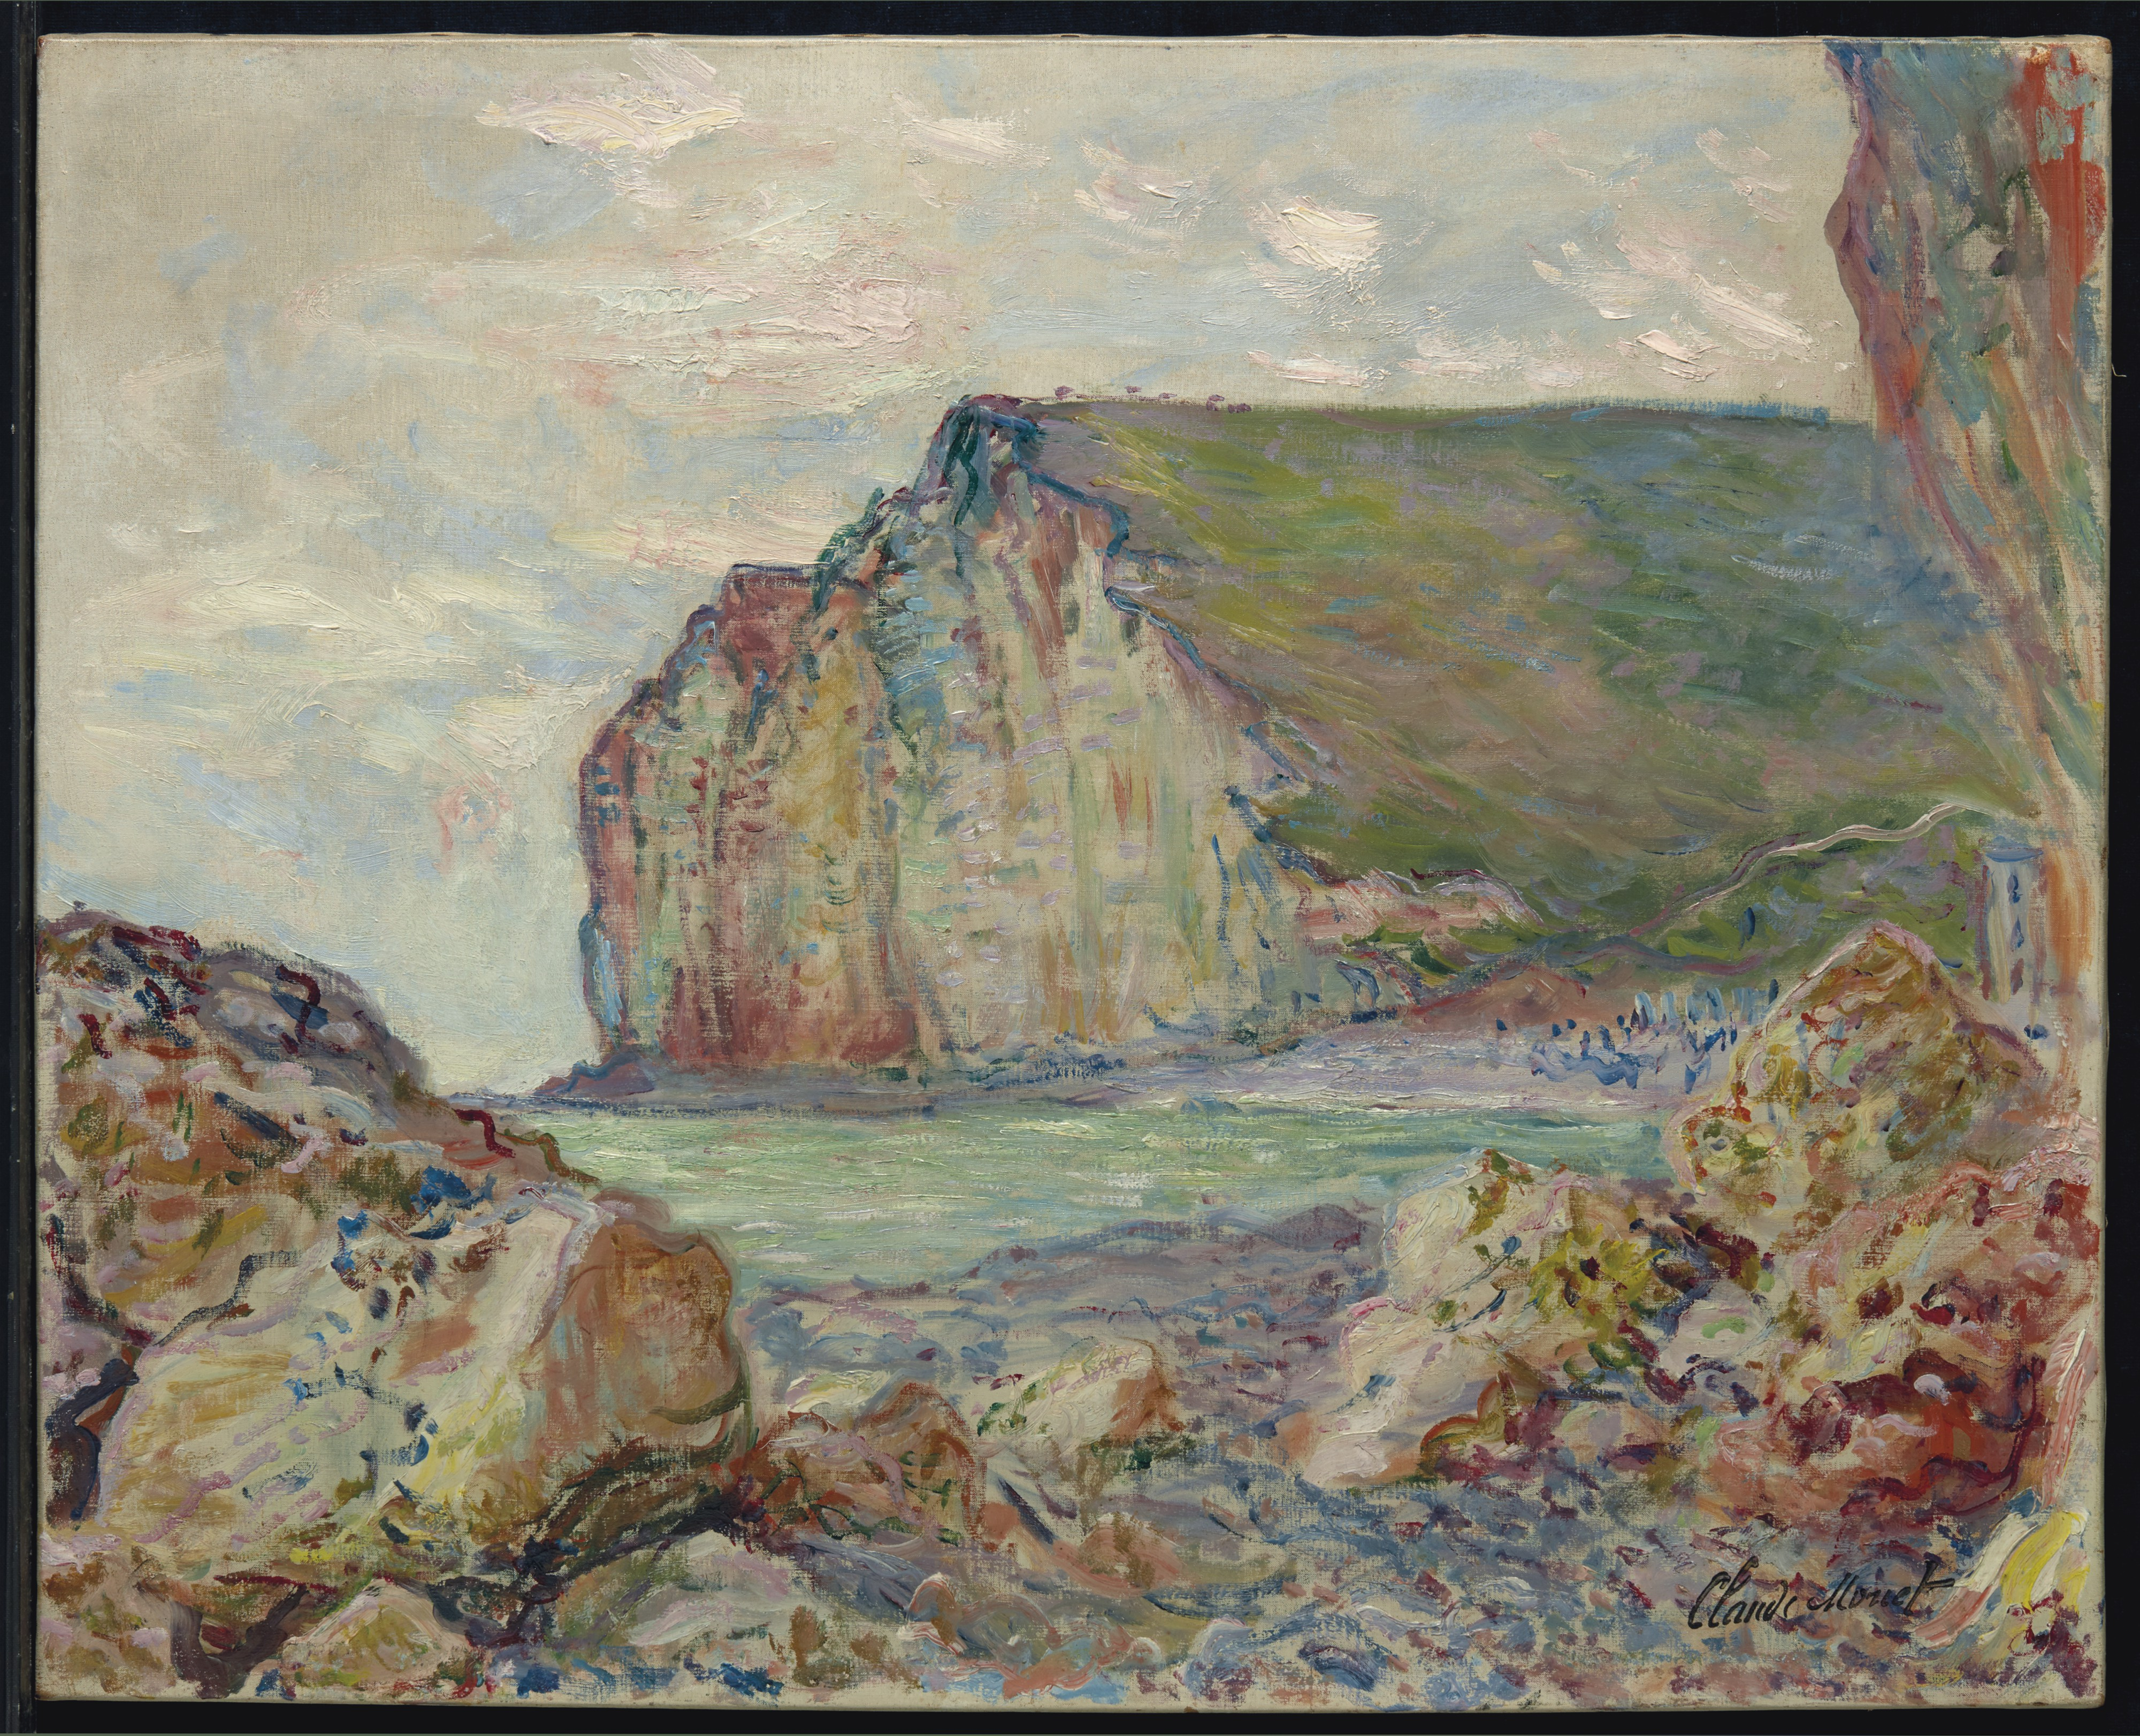 Lot 22: Claude Monet (1840-1926), Falaises des Petites-Dalles. Stamped with signature, painted near Les Petites-Dalles in 1884. Estimate: $2,000,000 - $3,000,000. ©Christie's Images Ltd, 2017.